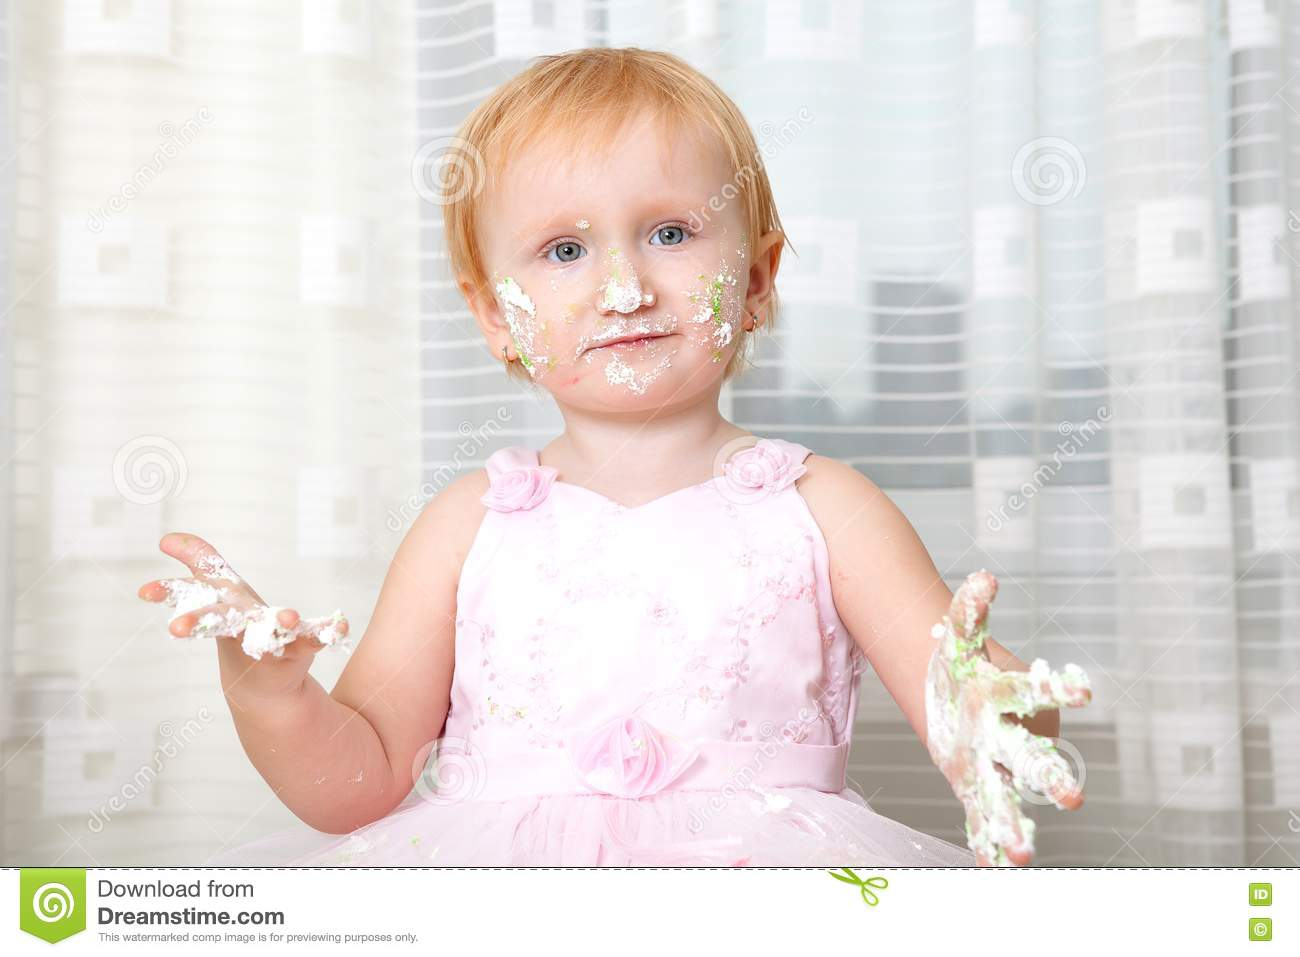 Baby Eating Cake Clipart : Baby Eating Cake Royalty Free Stock Photography - Image ...